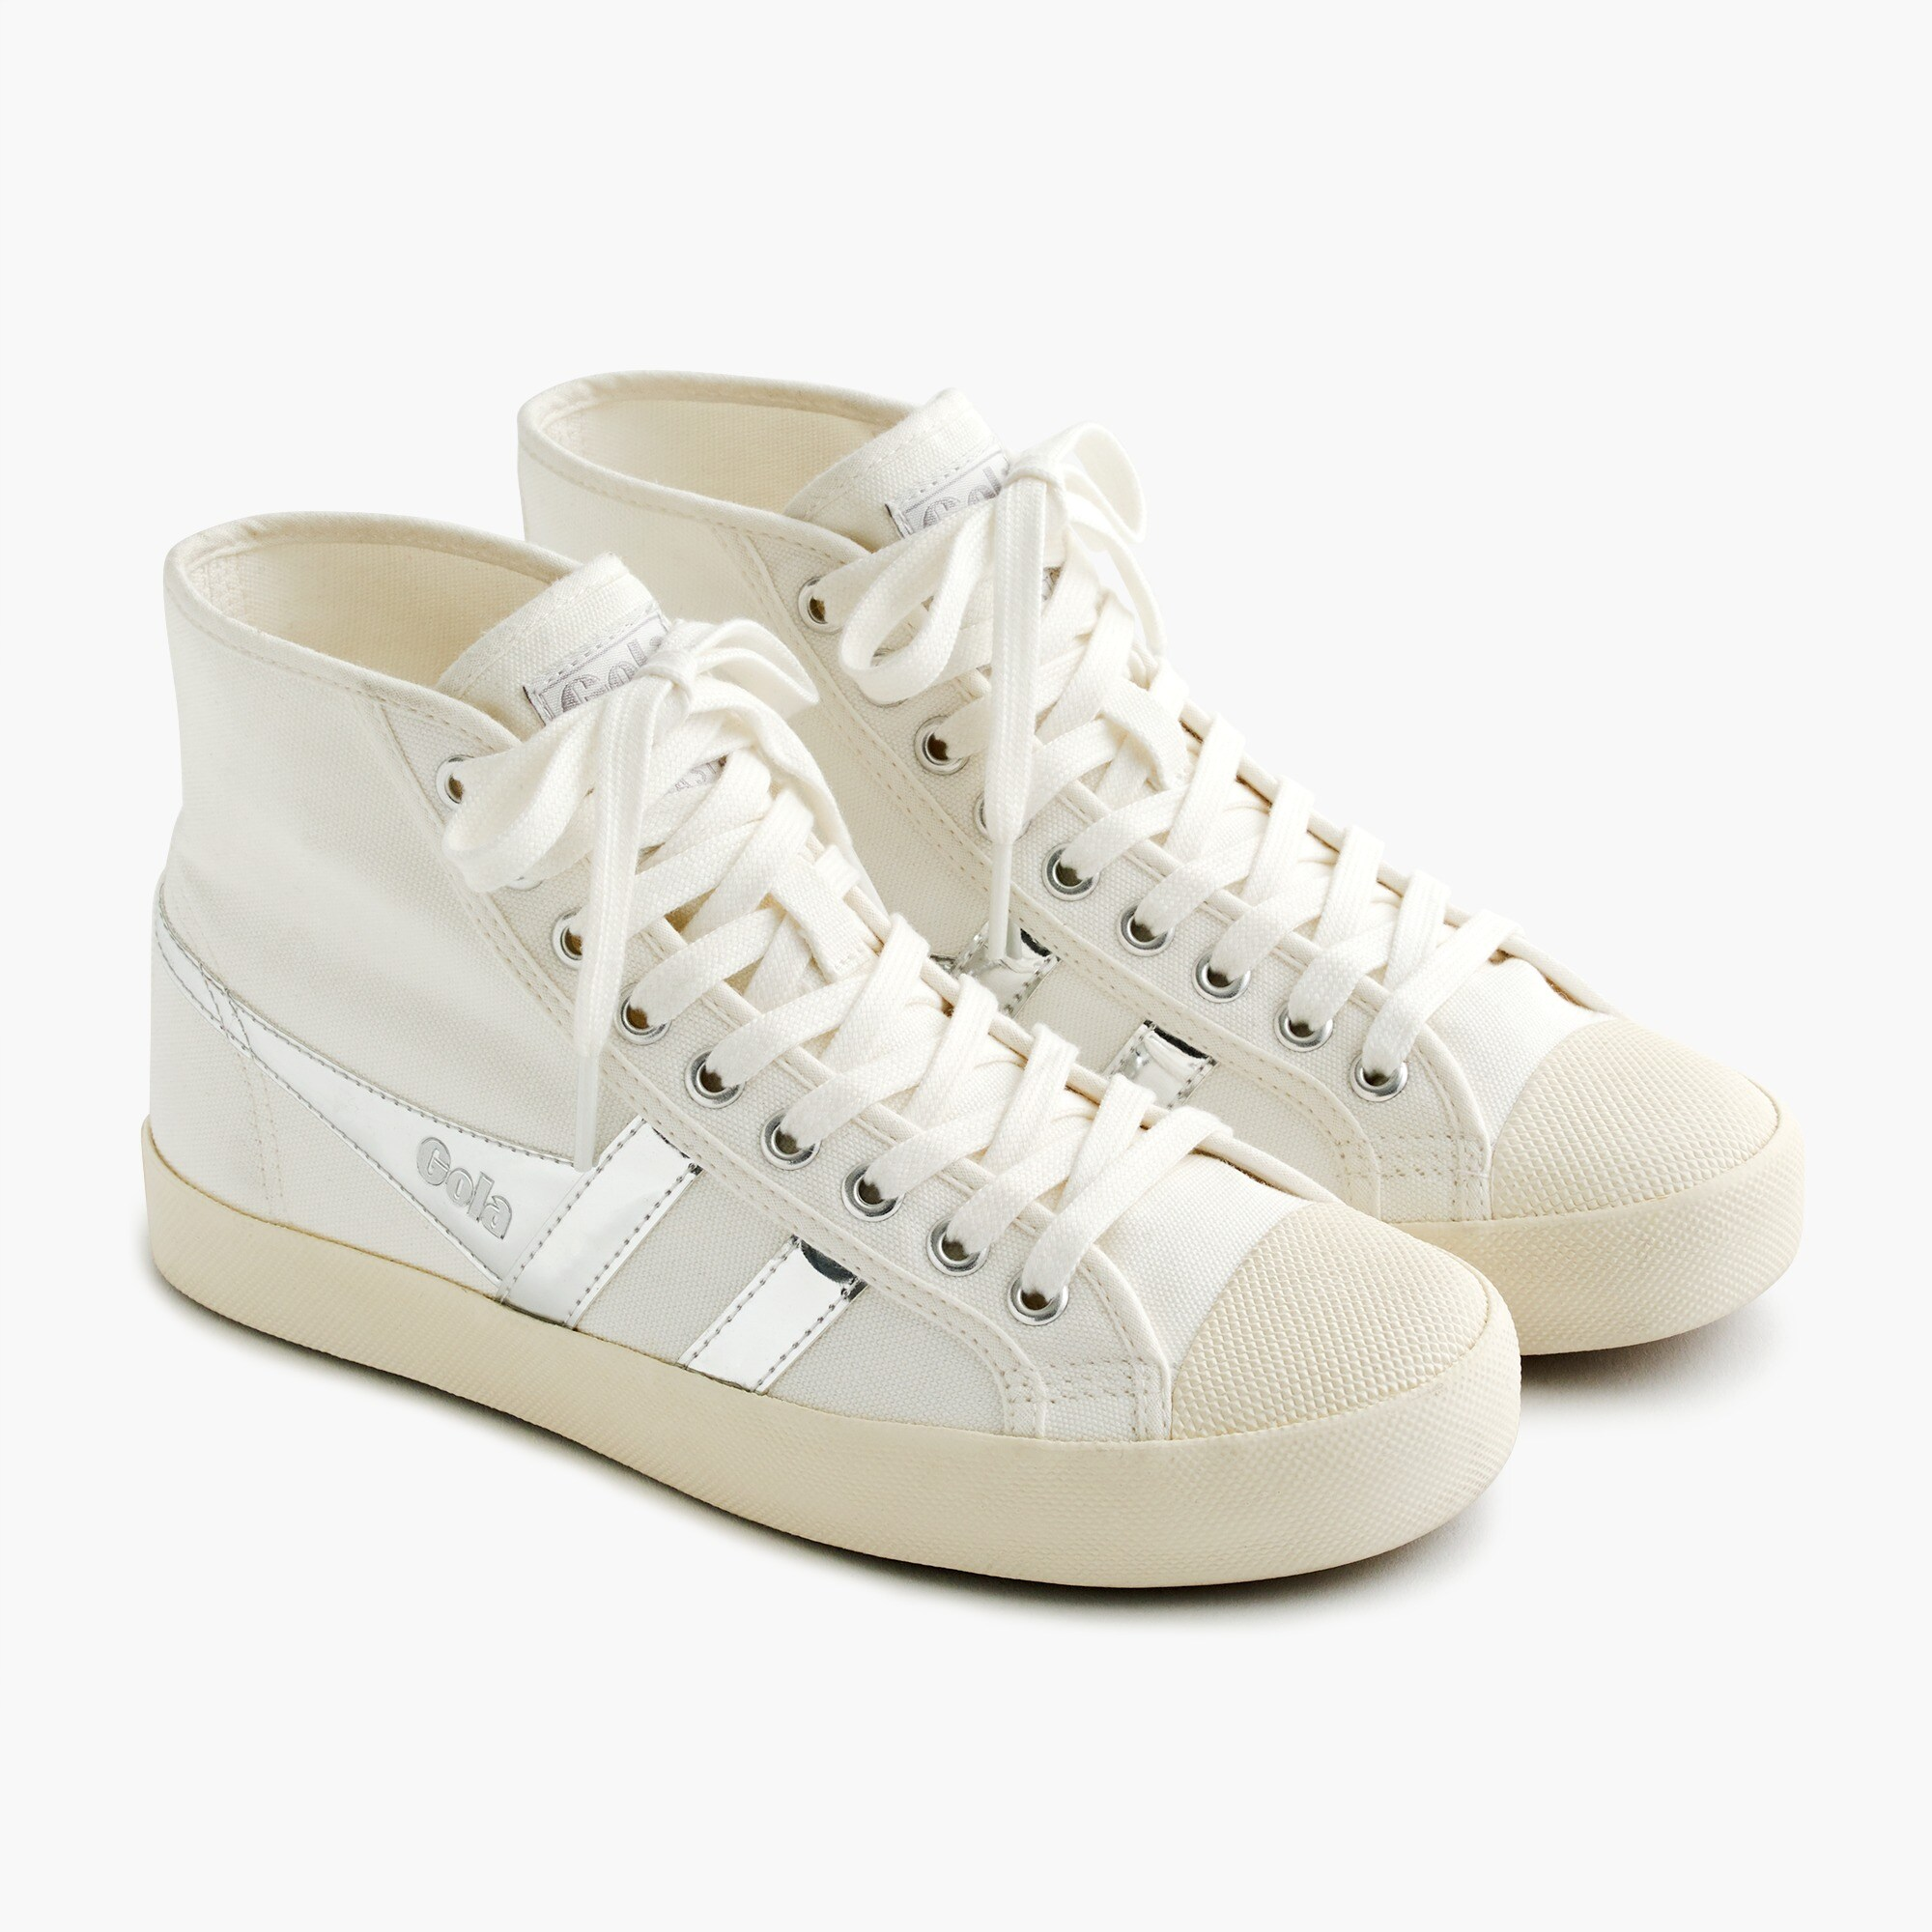 womens Gola® for J.Crew Coaster high-top sneaker